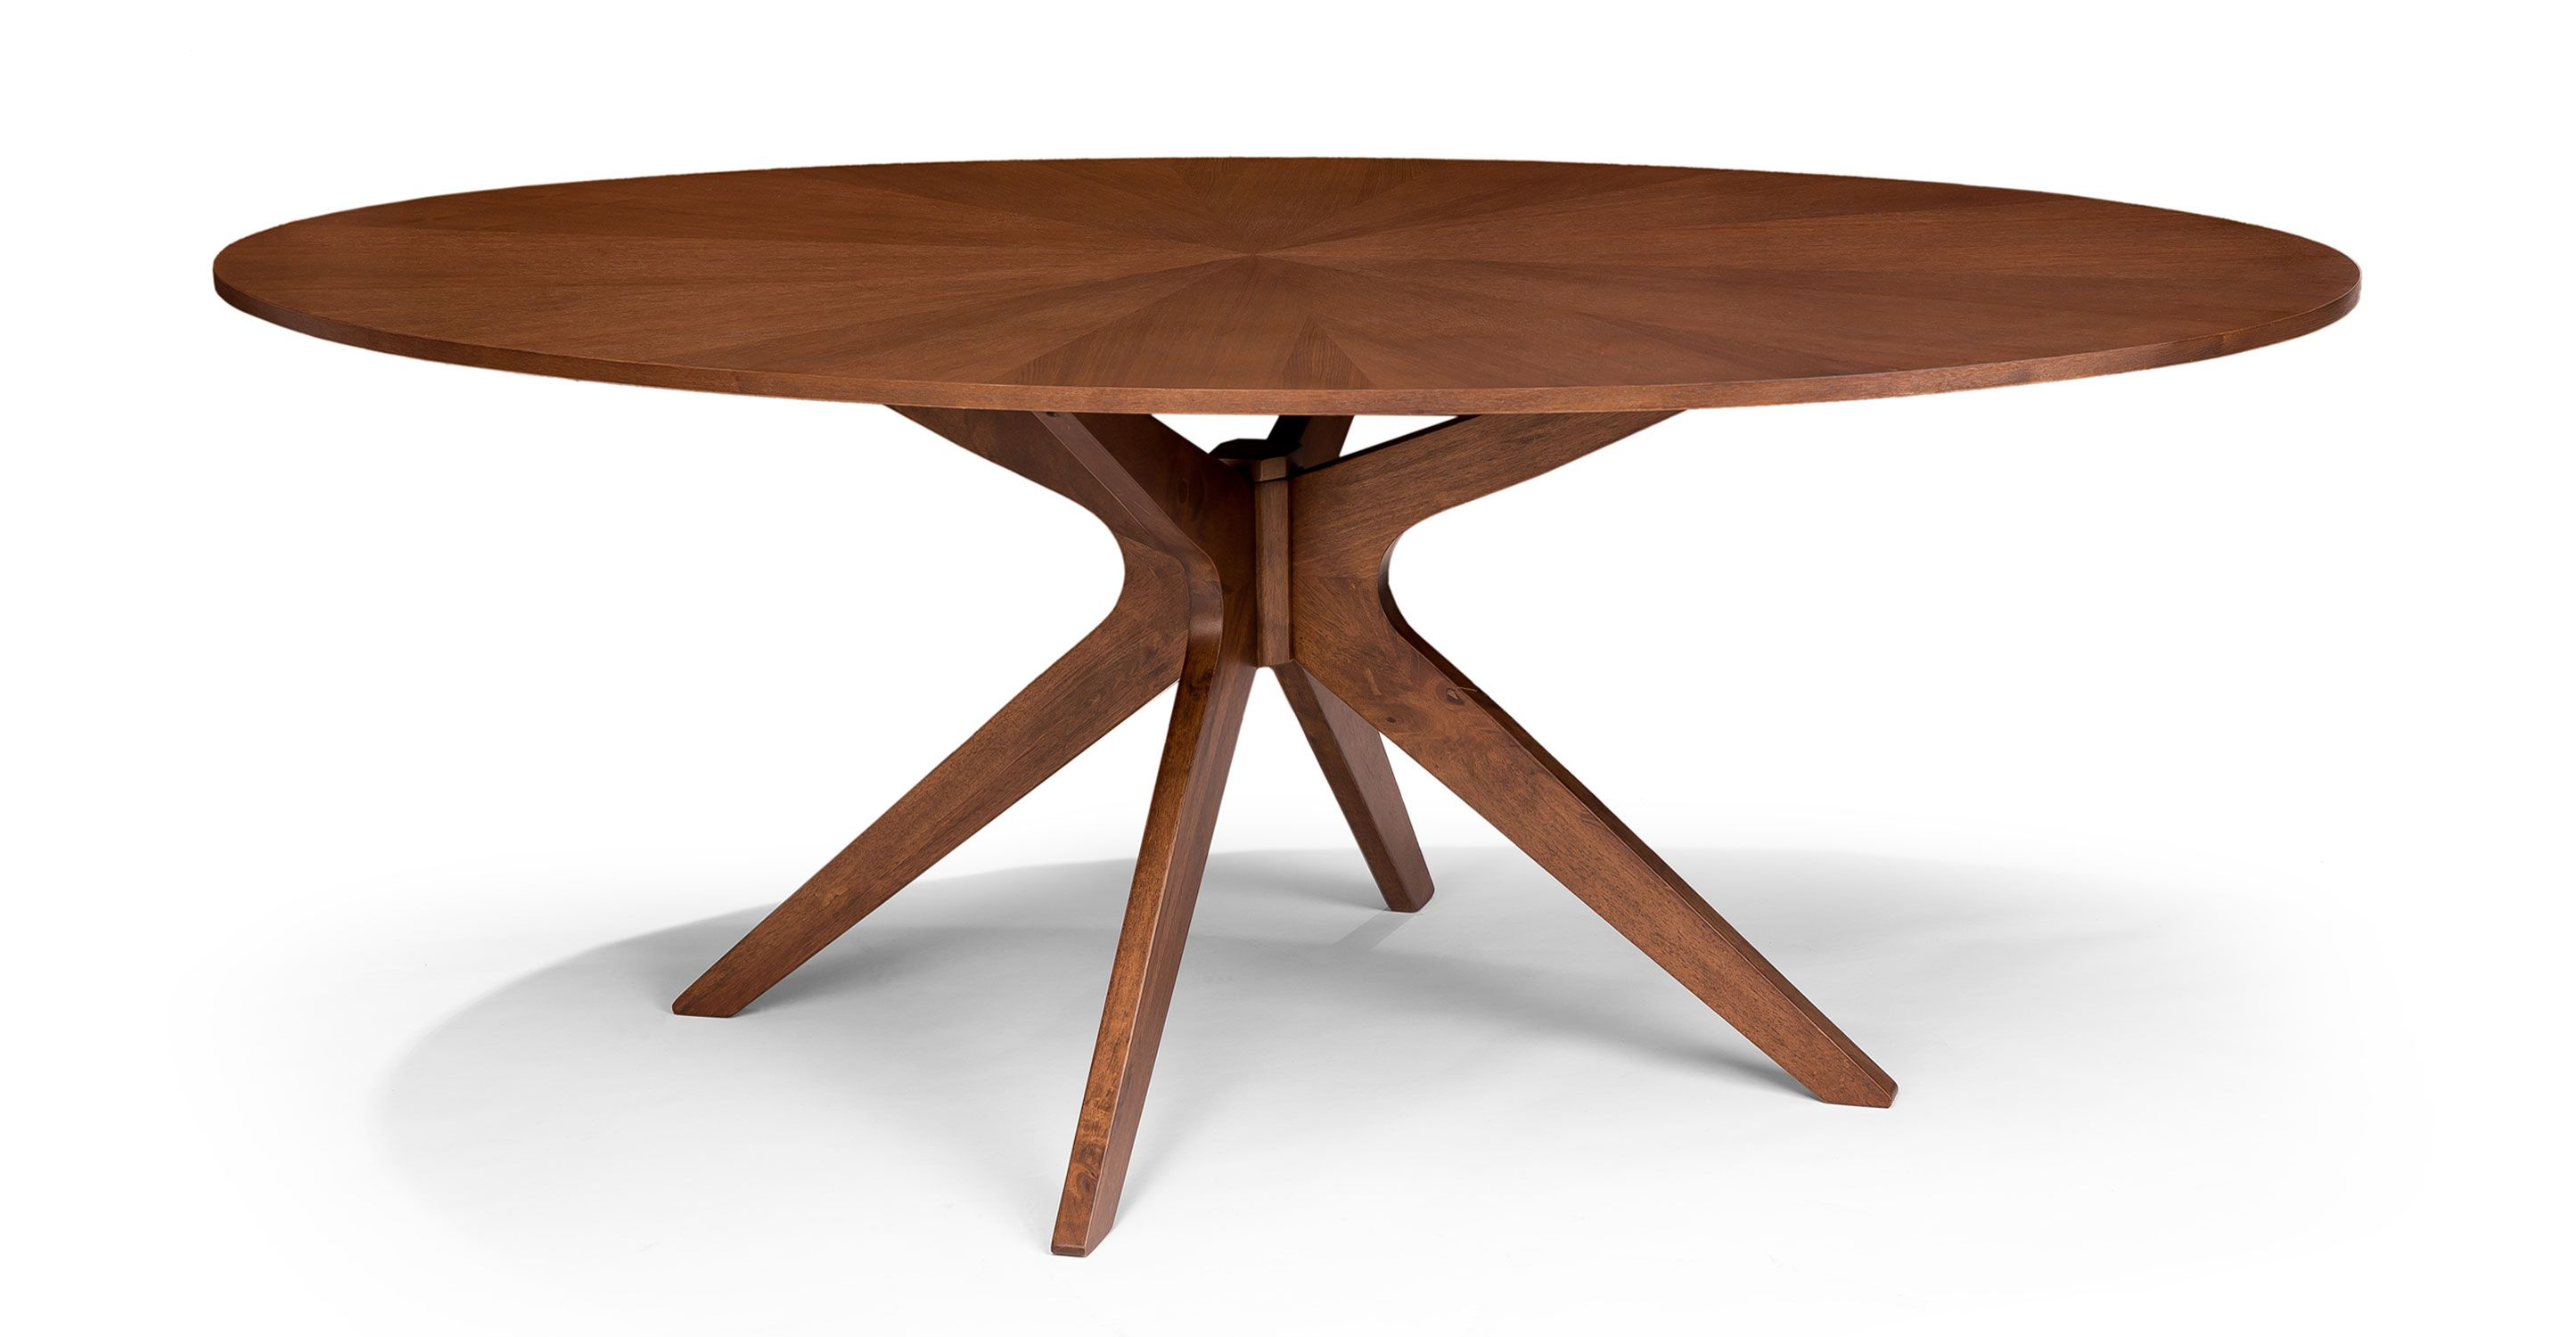 Conan Oval Dining Table - Wood Tables - Bryght Modern